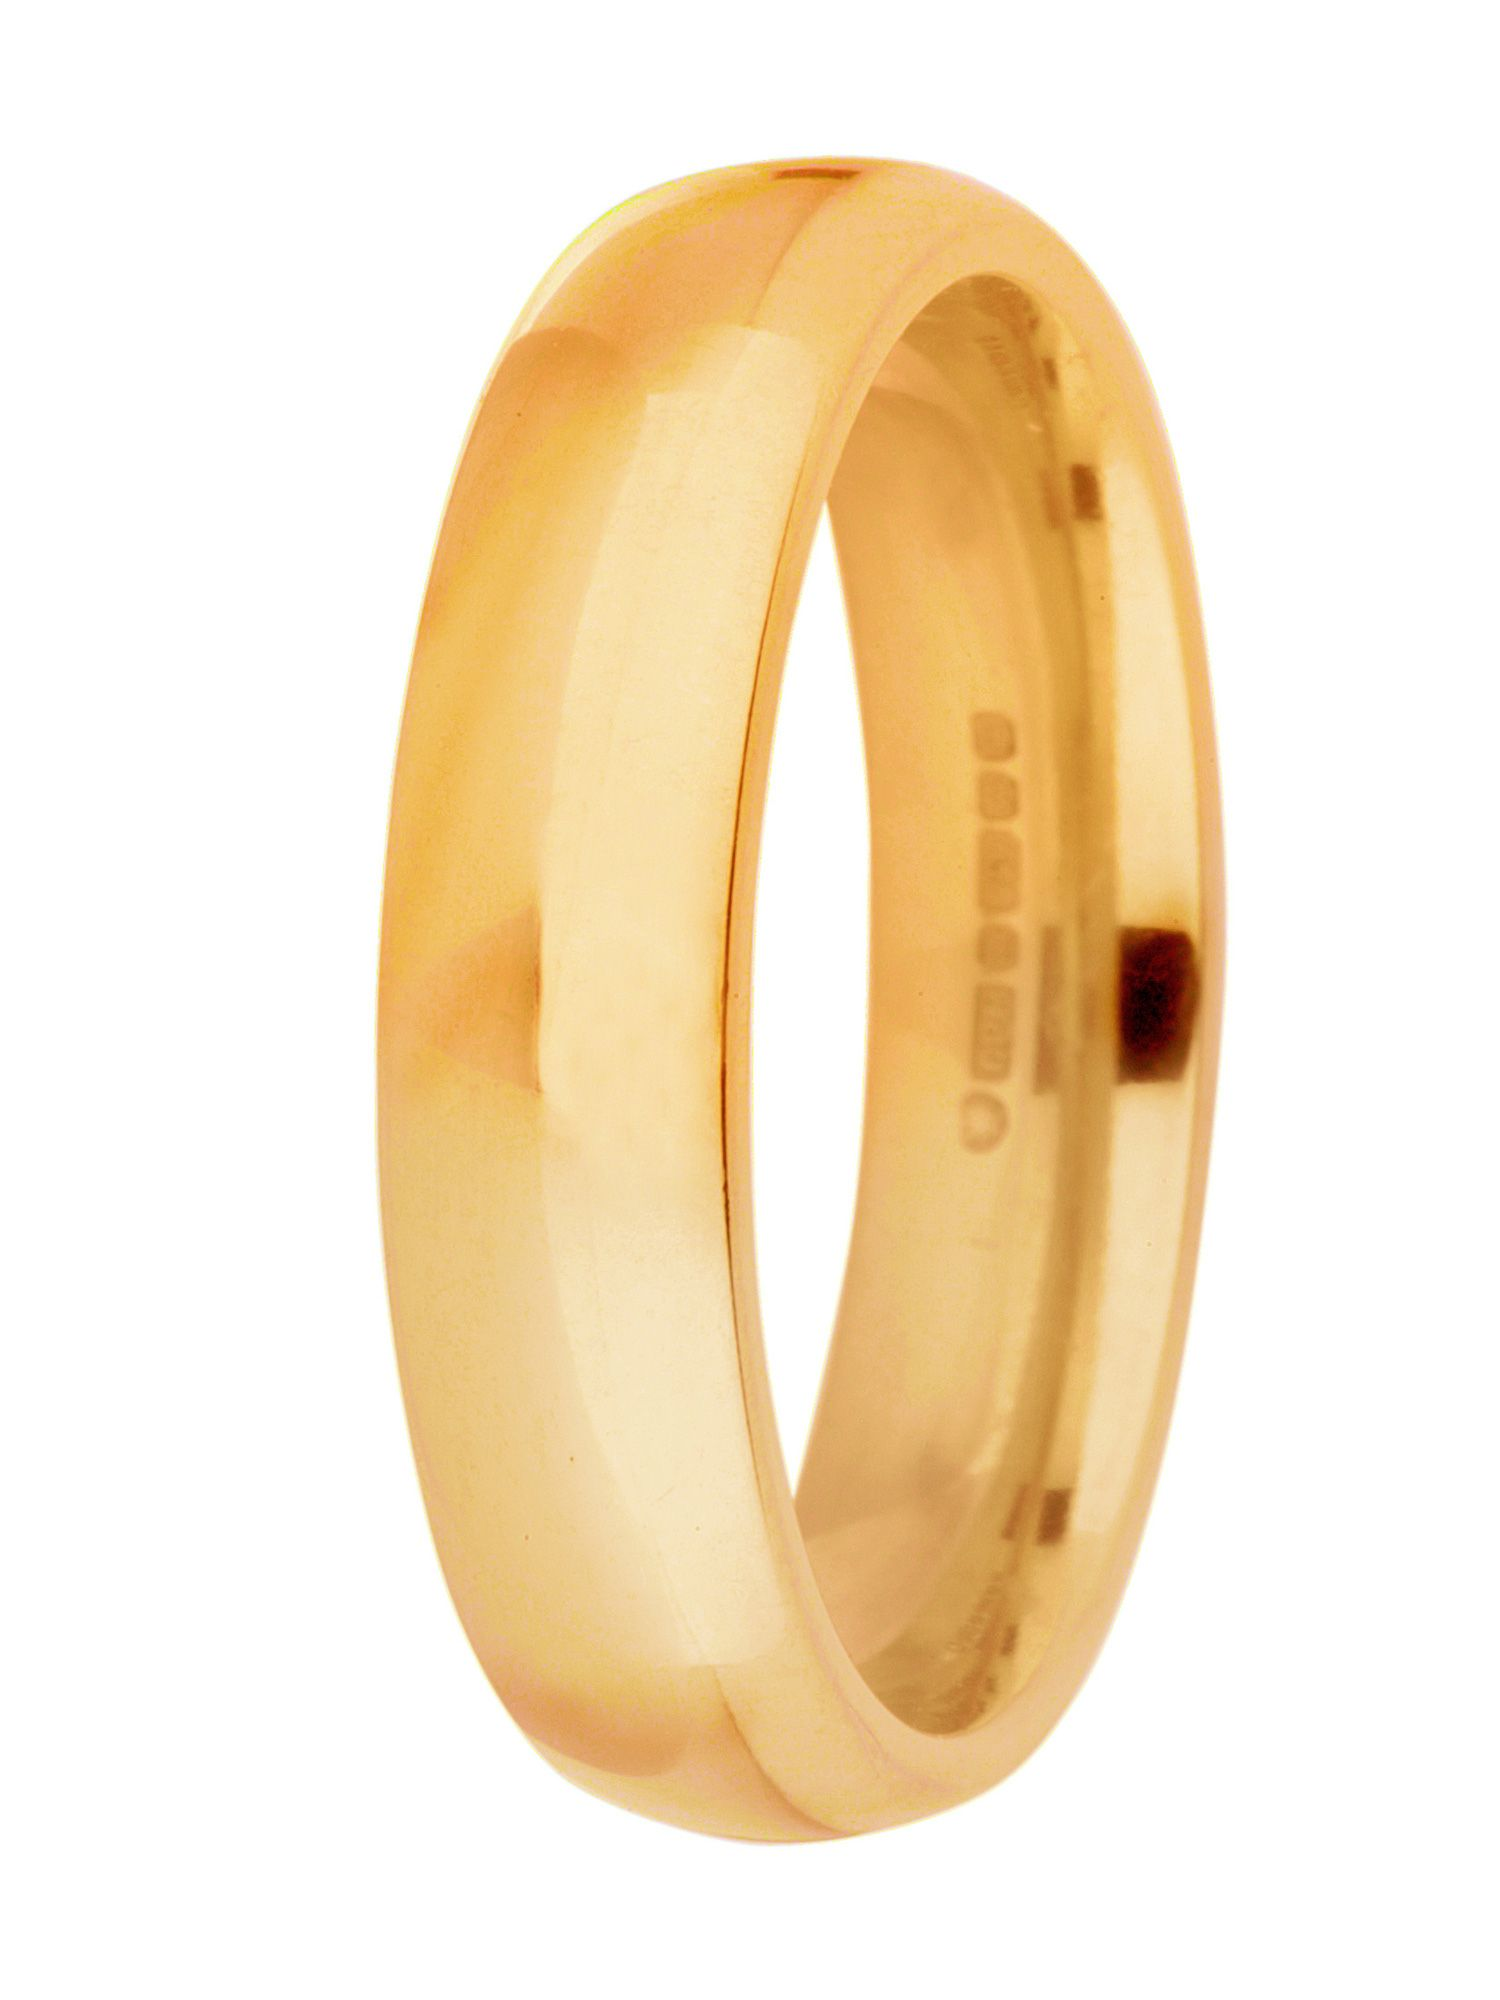 Grooms 9ct gold 5mm court wedding ring - Gold